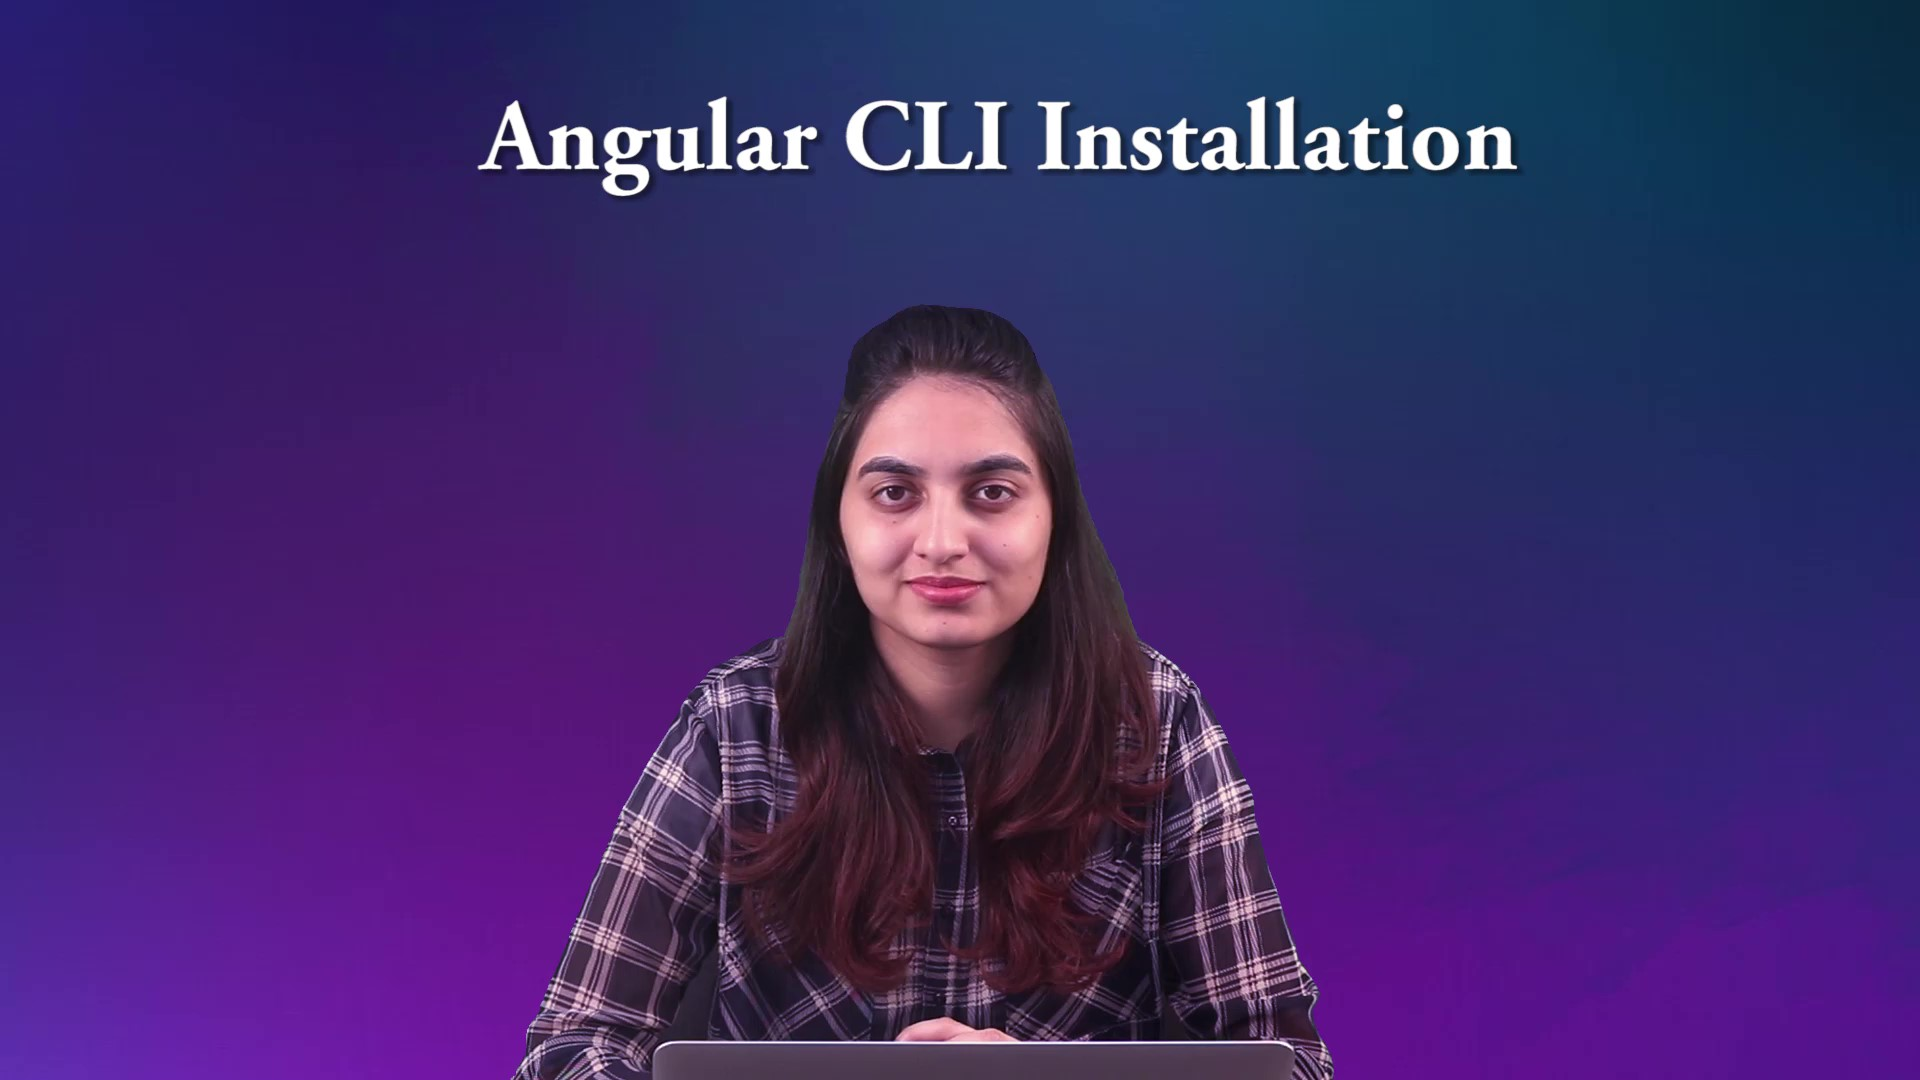 Let's get started - Installation of Angular CLI